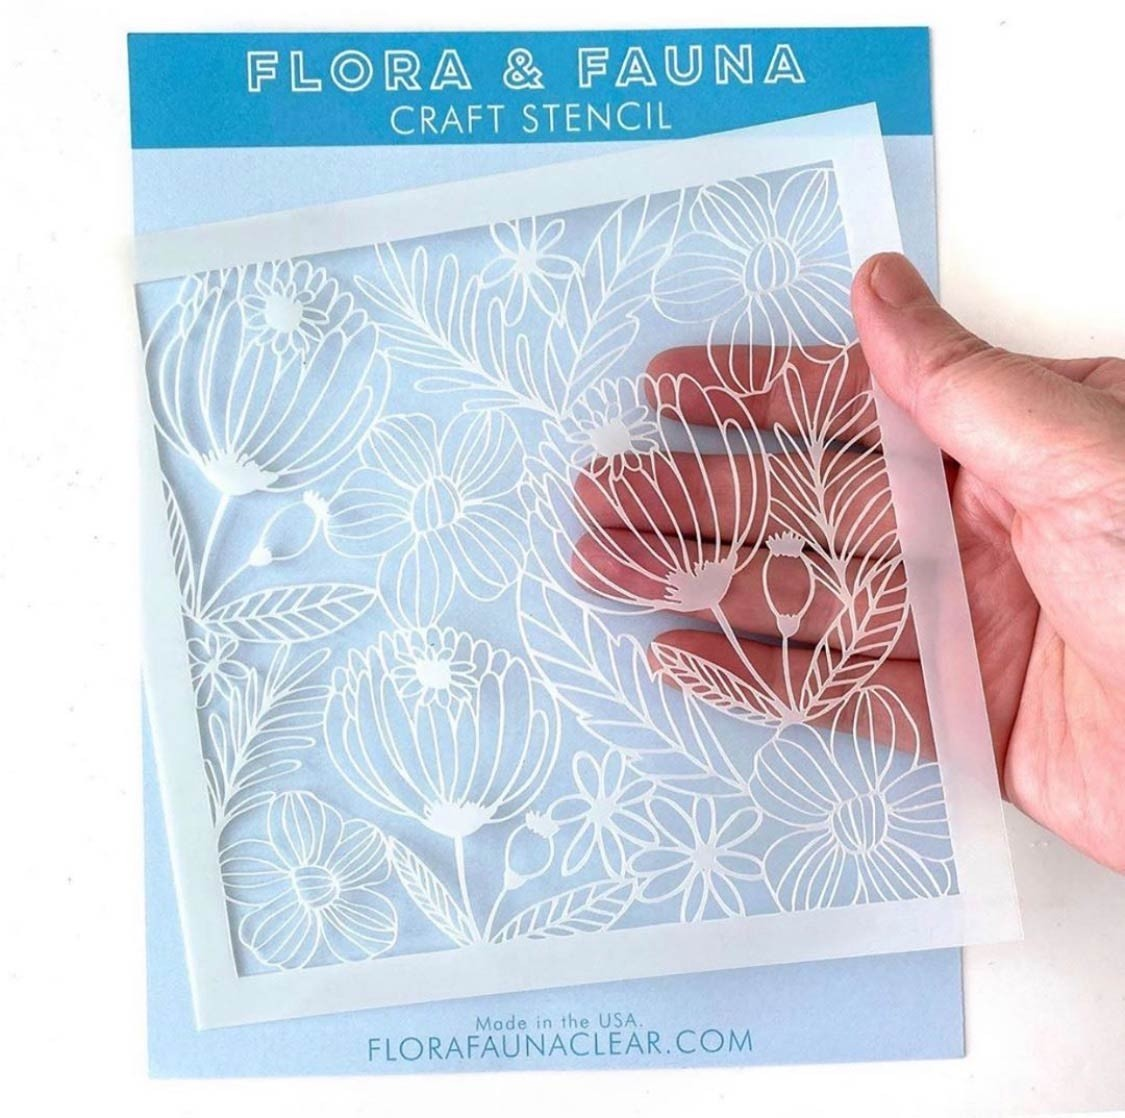 Flora and Fauna Floral Stencil 40008